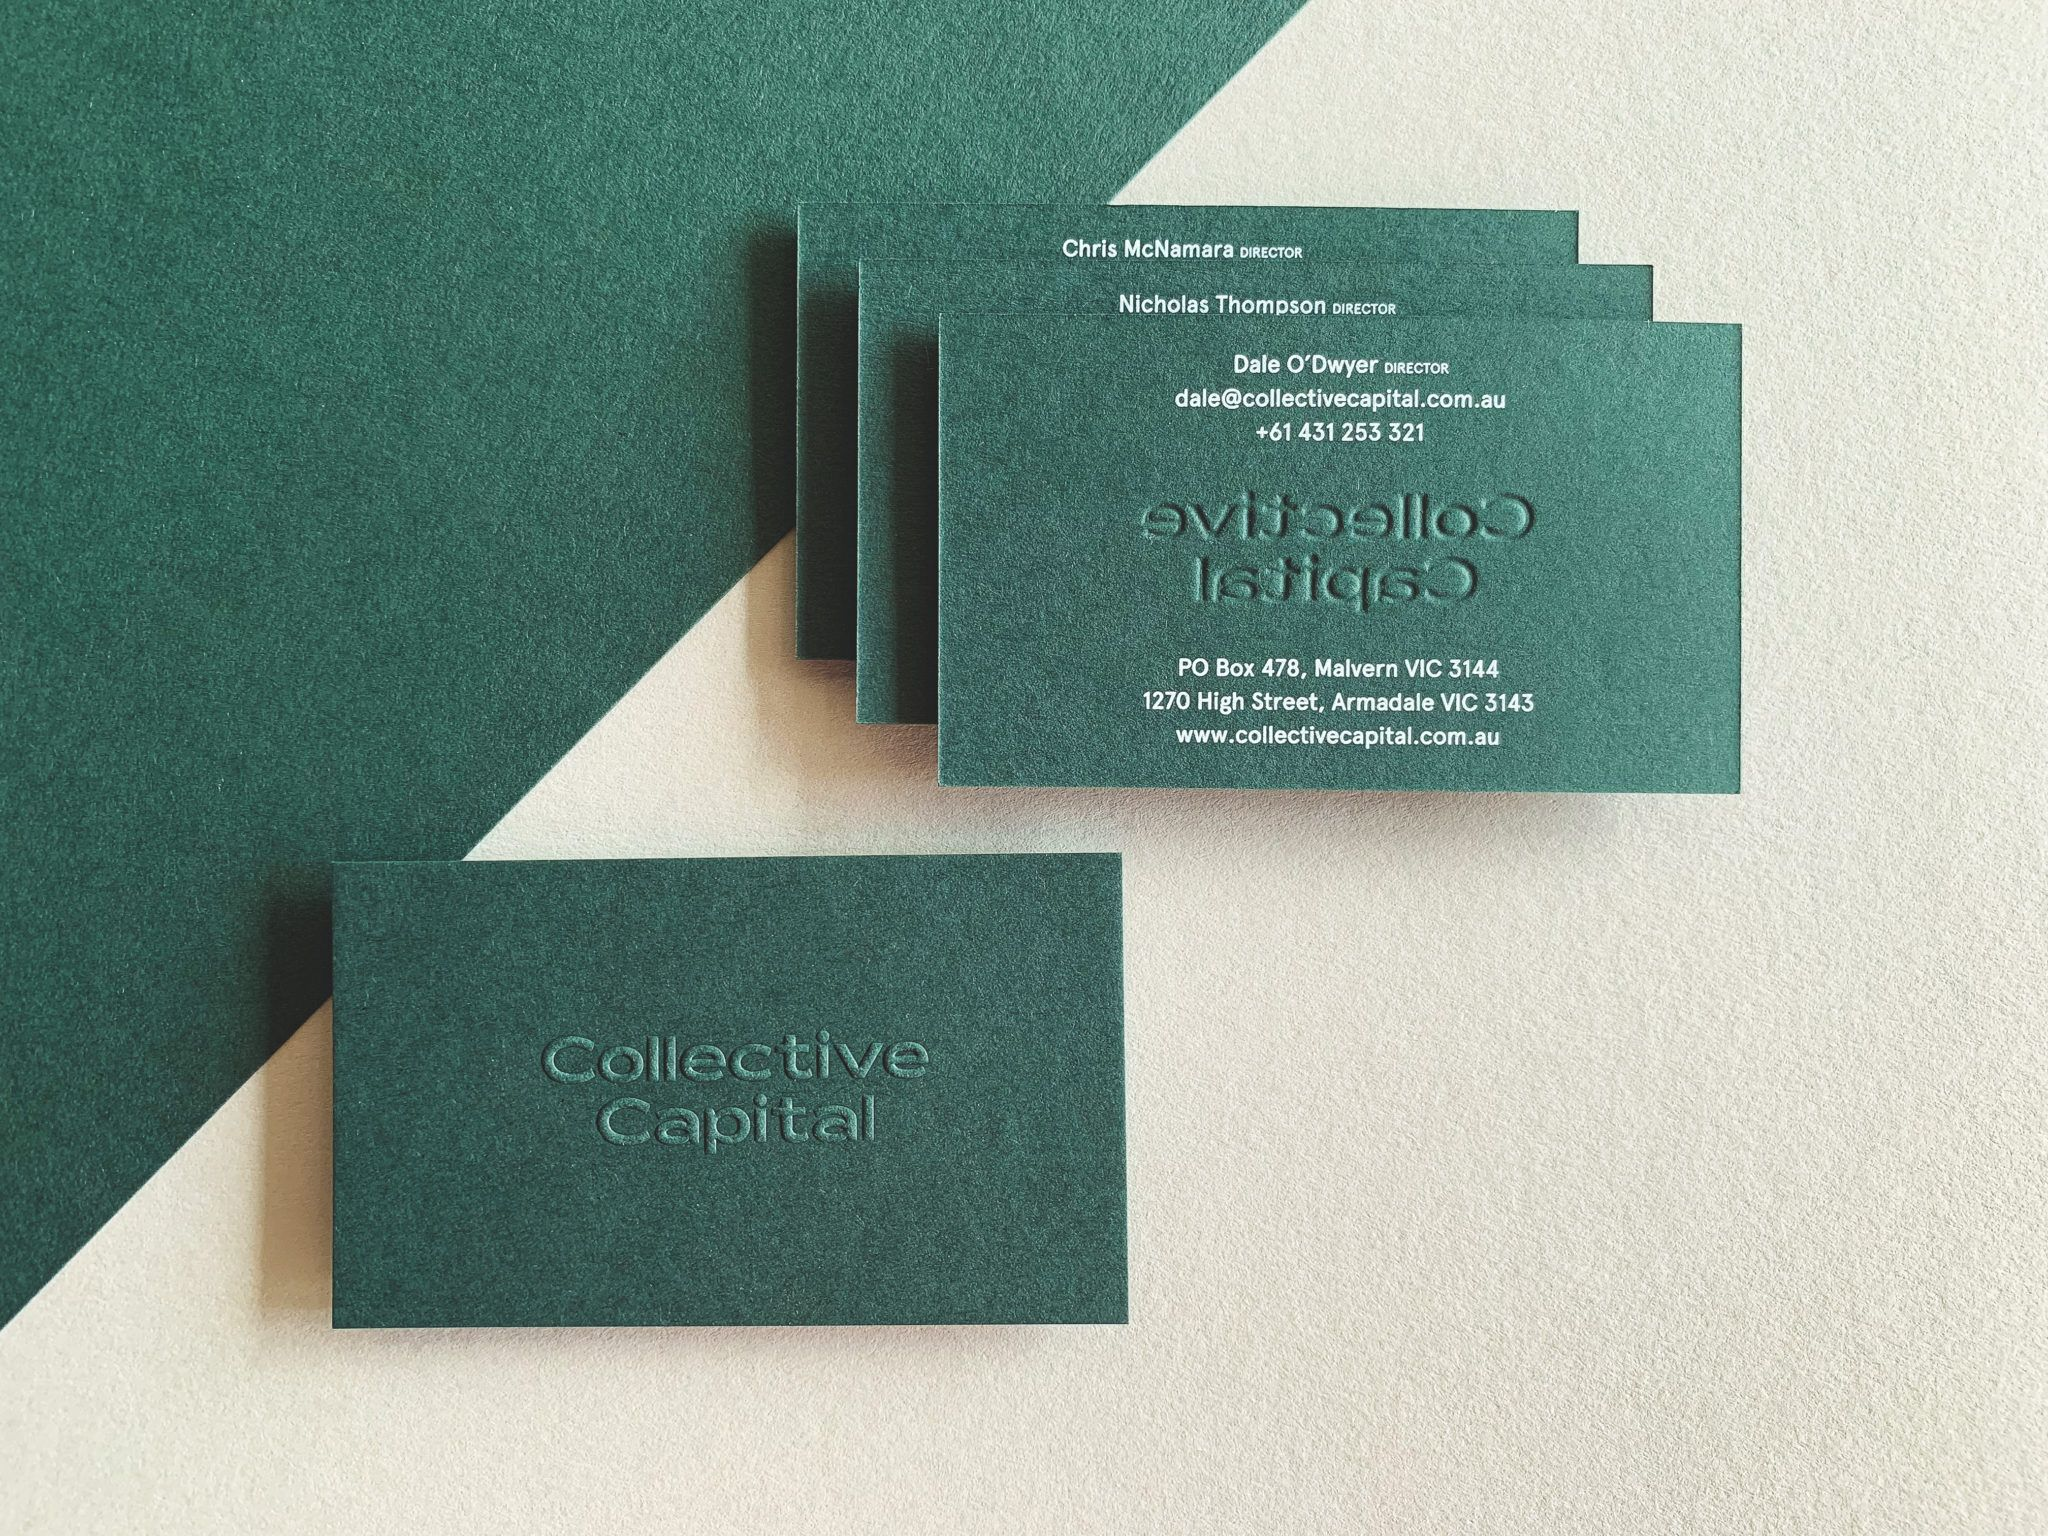 Embossed Opaque White Digital Business Cards For Collective Capital On Colorplan 2 Letterpress Business Cards Embossed Business Cards Digital Business Card